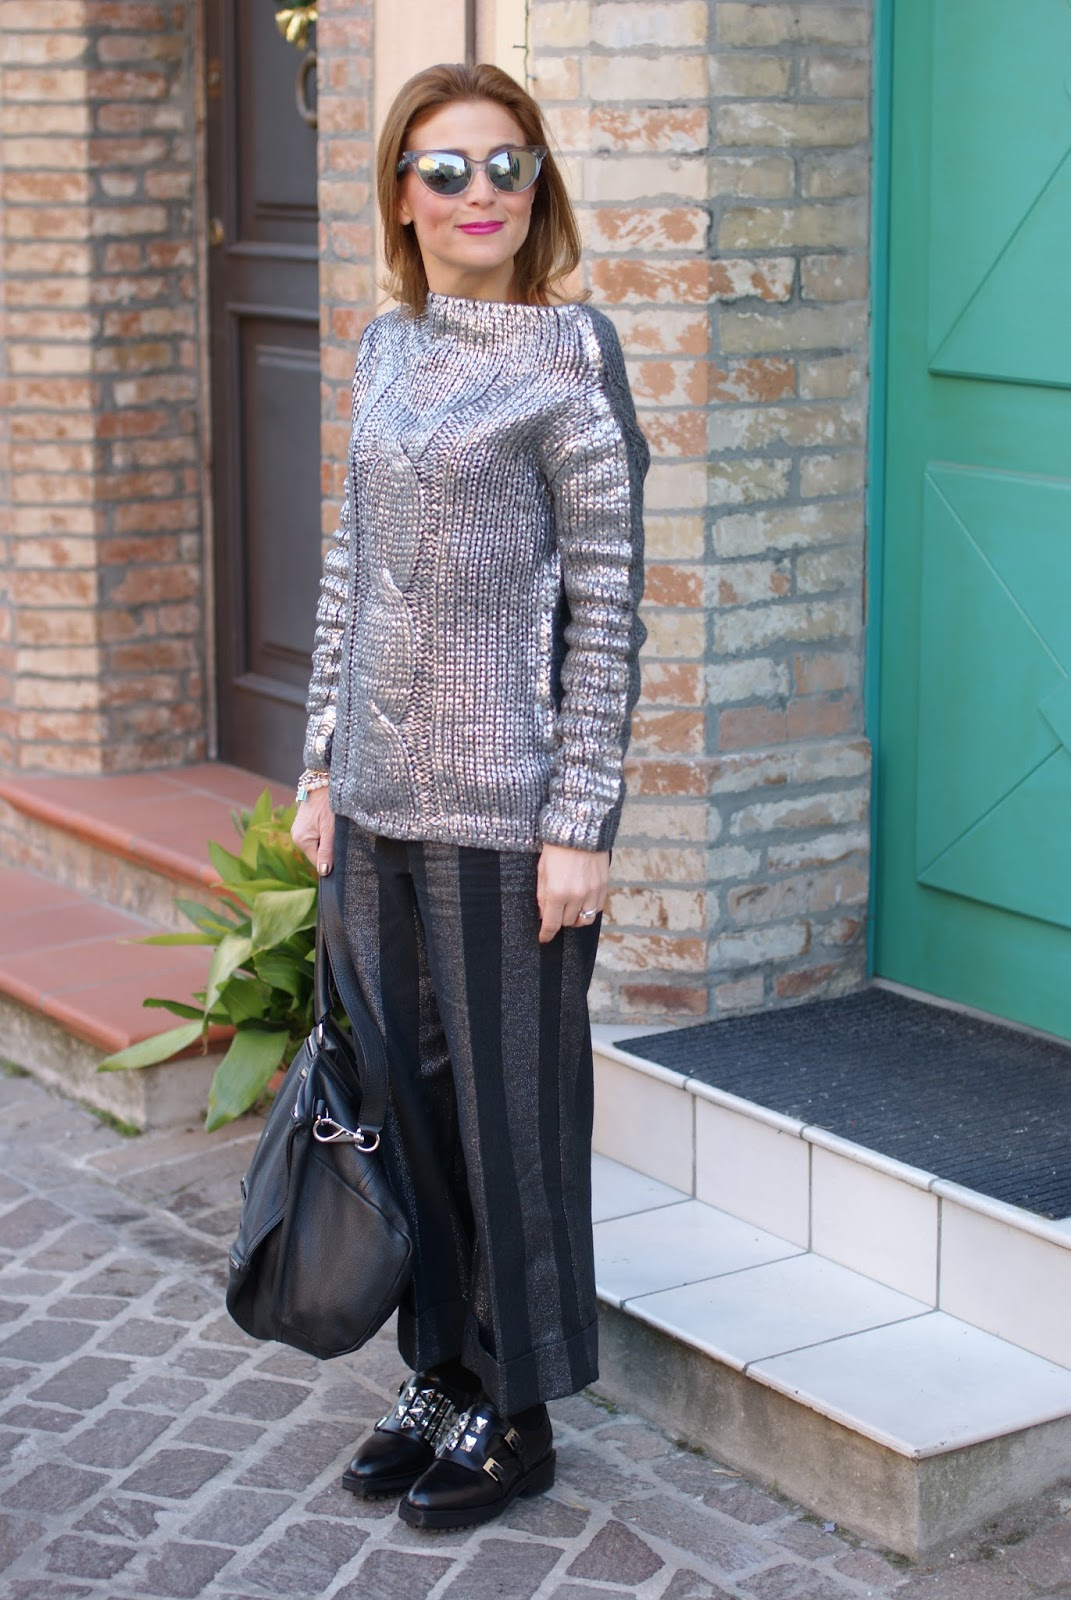 Black and silver outfit with Le Silla shoes on Fashion and Cookies fashion blog, fashion blogger style